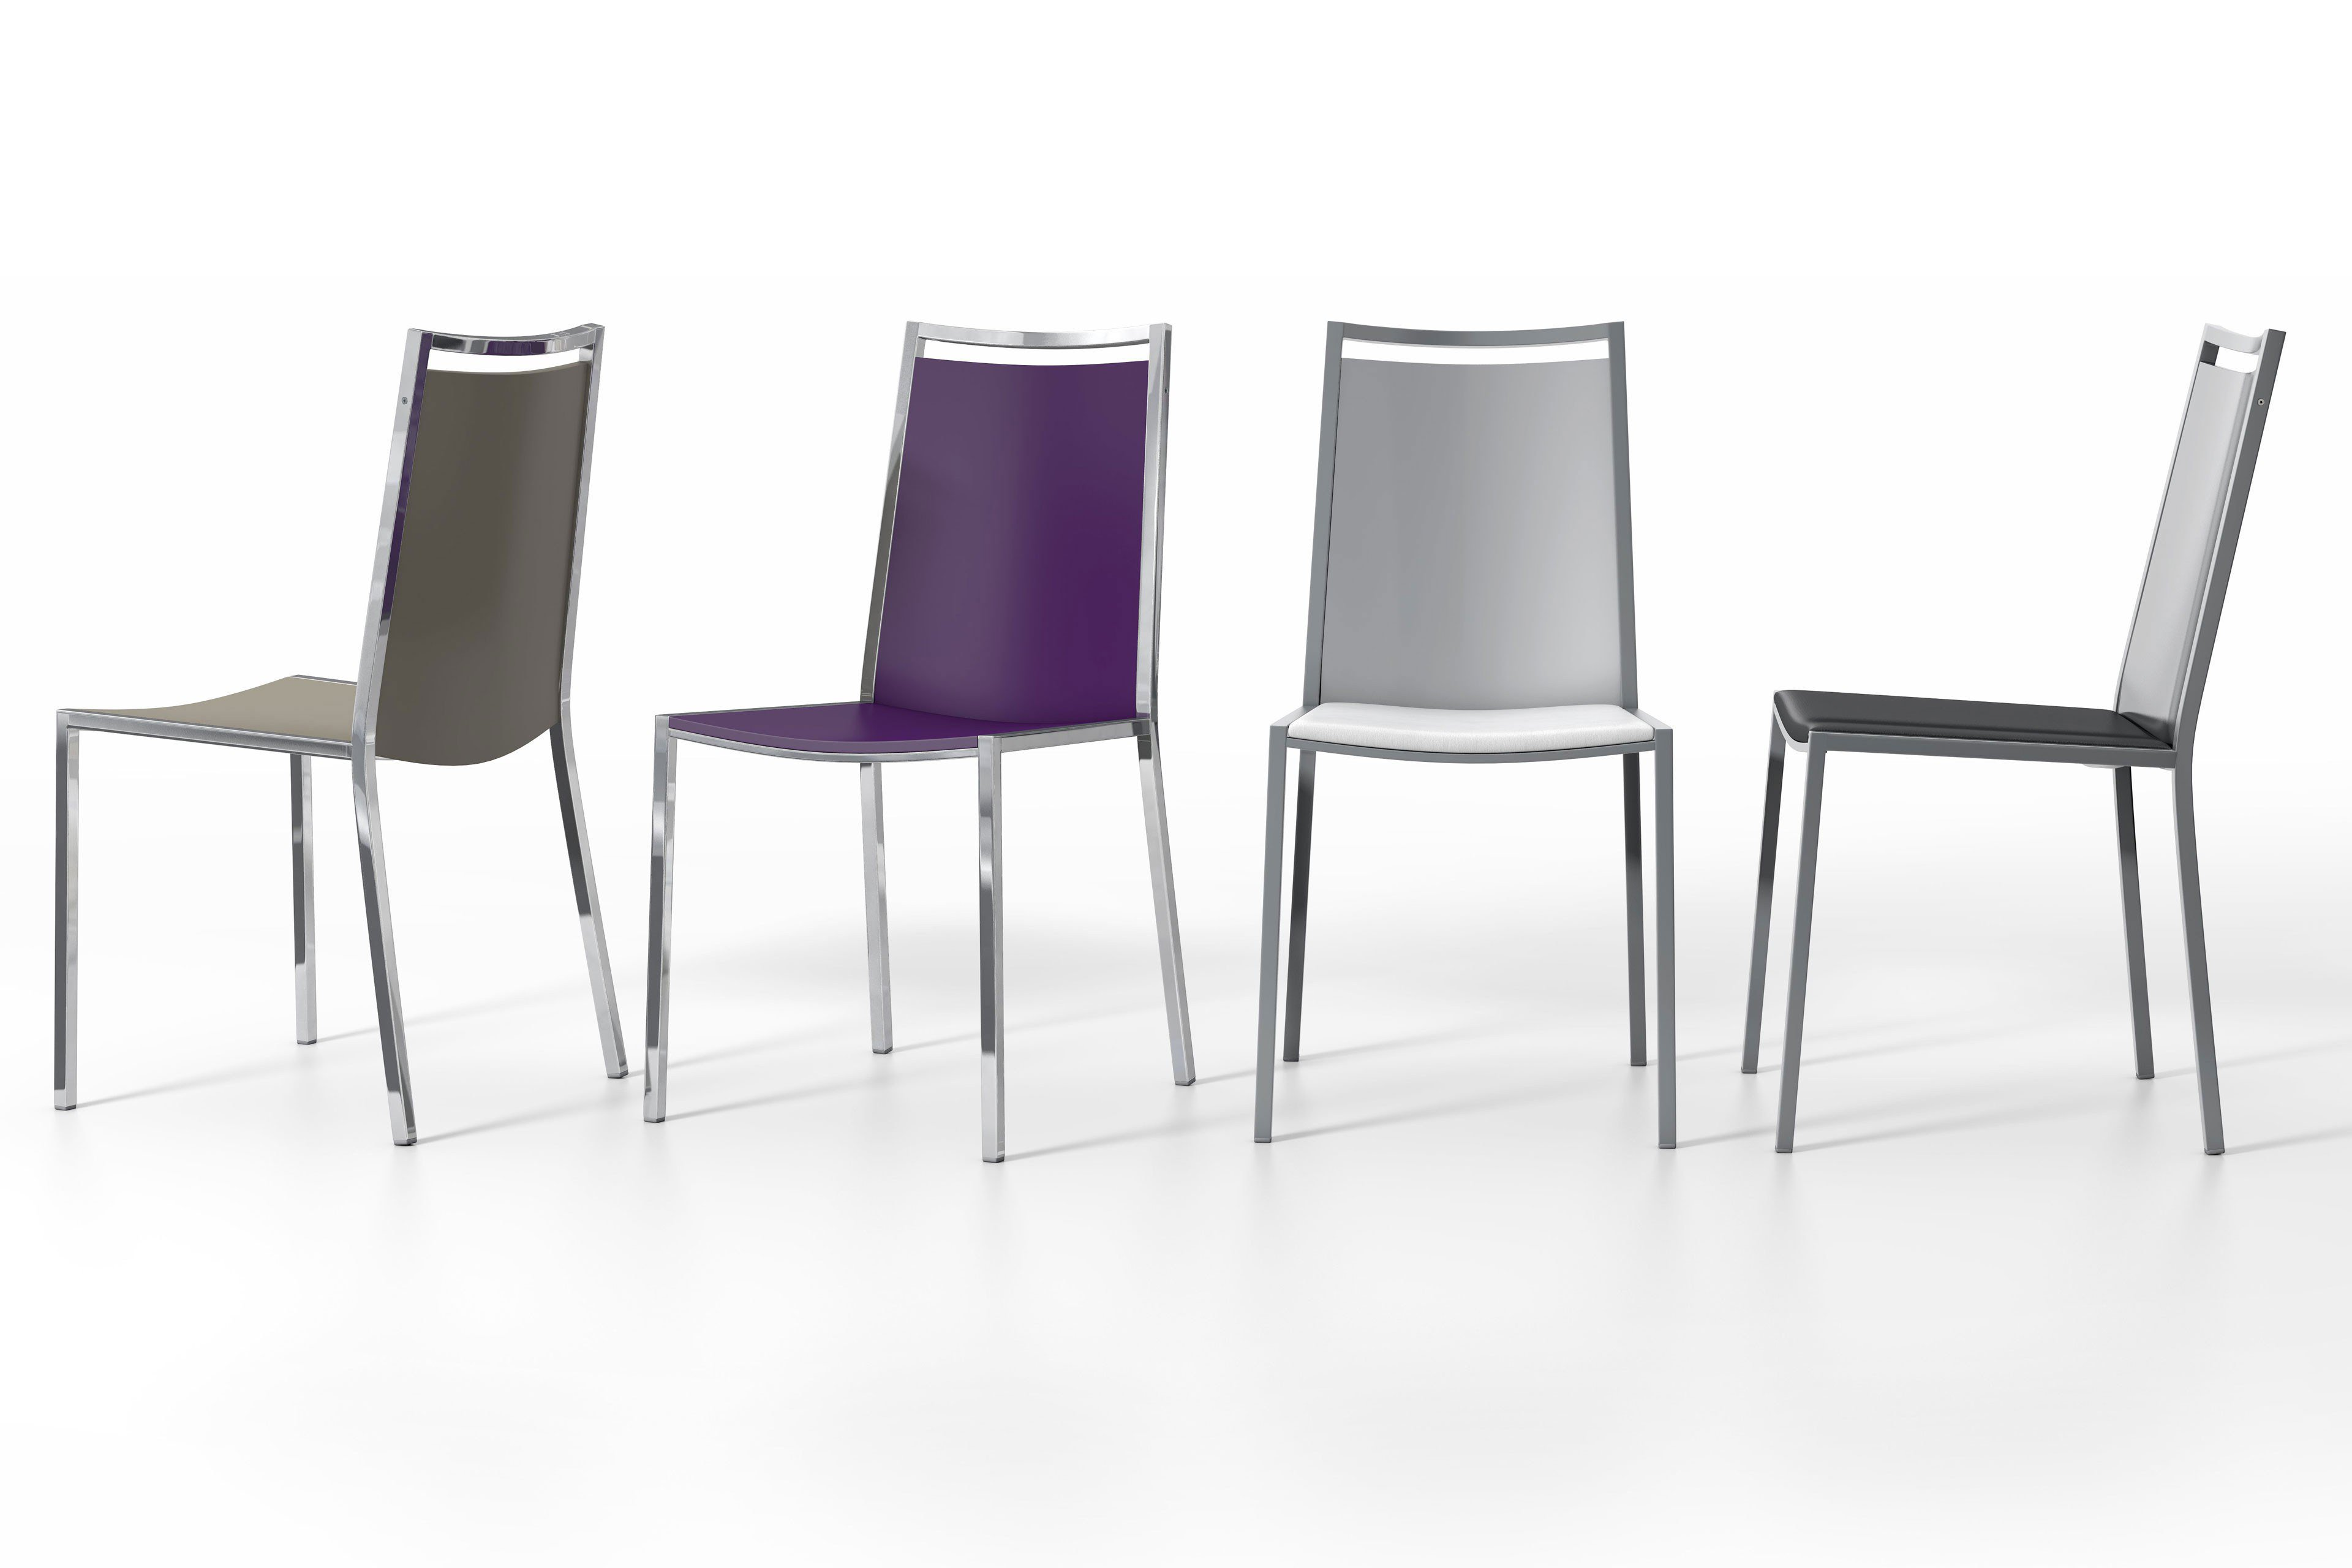 cancio stuhl concept aluminium violett m bel letz ihr online shop. Black Bedroom Furniture Sets. Home Design Ideas